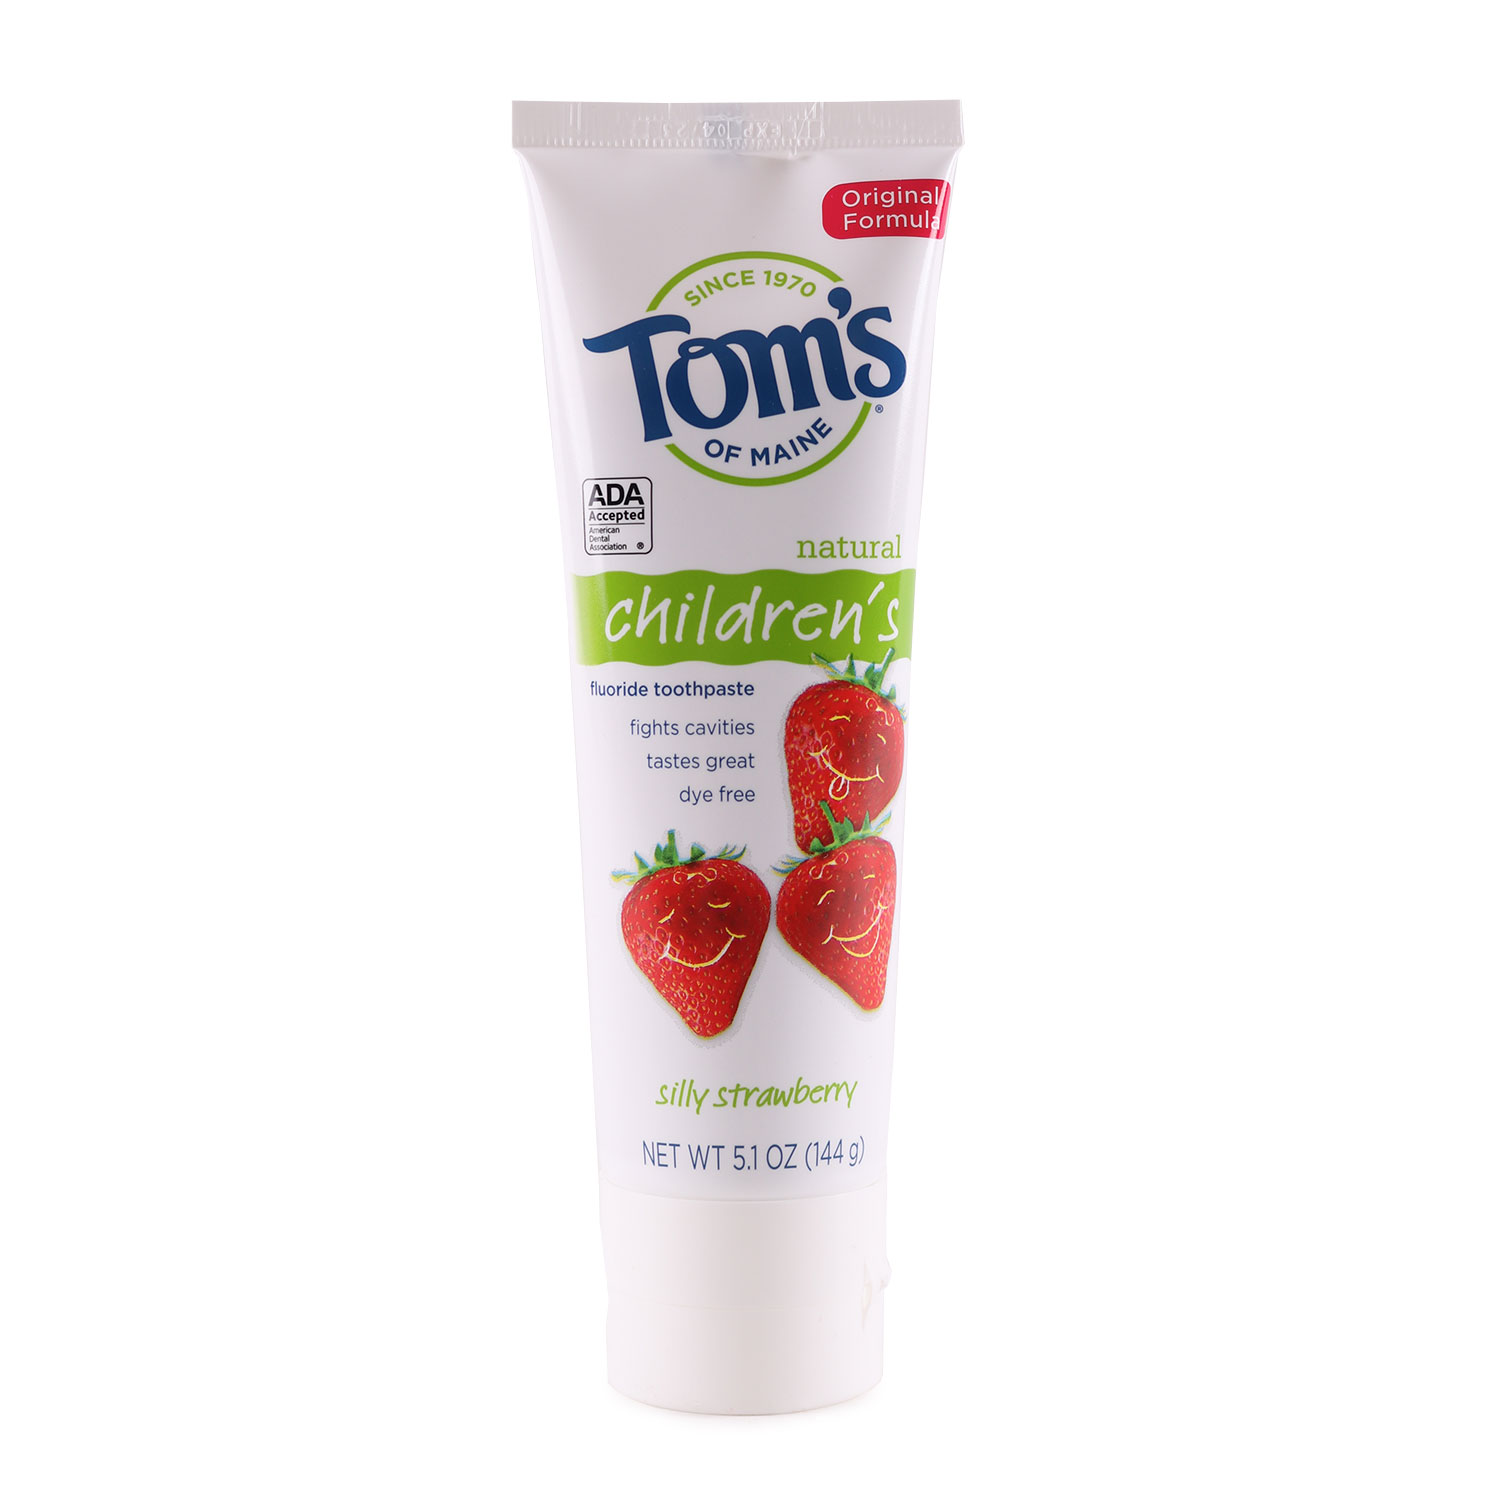 Tooth Paste, with Flouride - Children's - Silly Strawberry